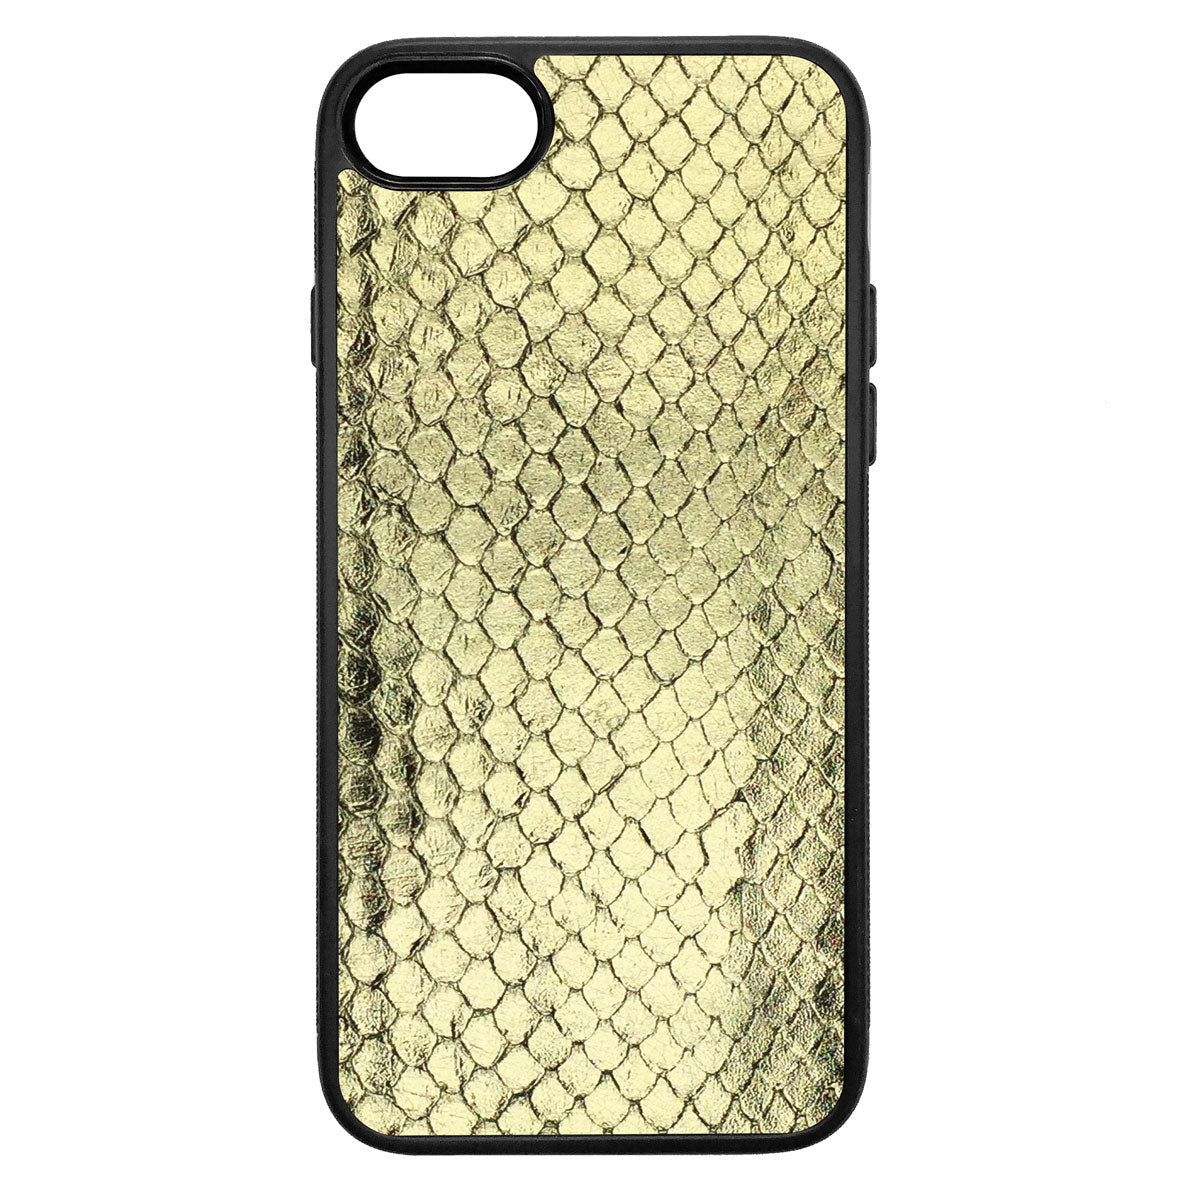 Gold Foil Anaconda iPhone 7 Leather Case